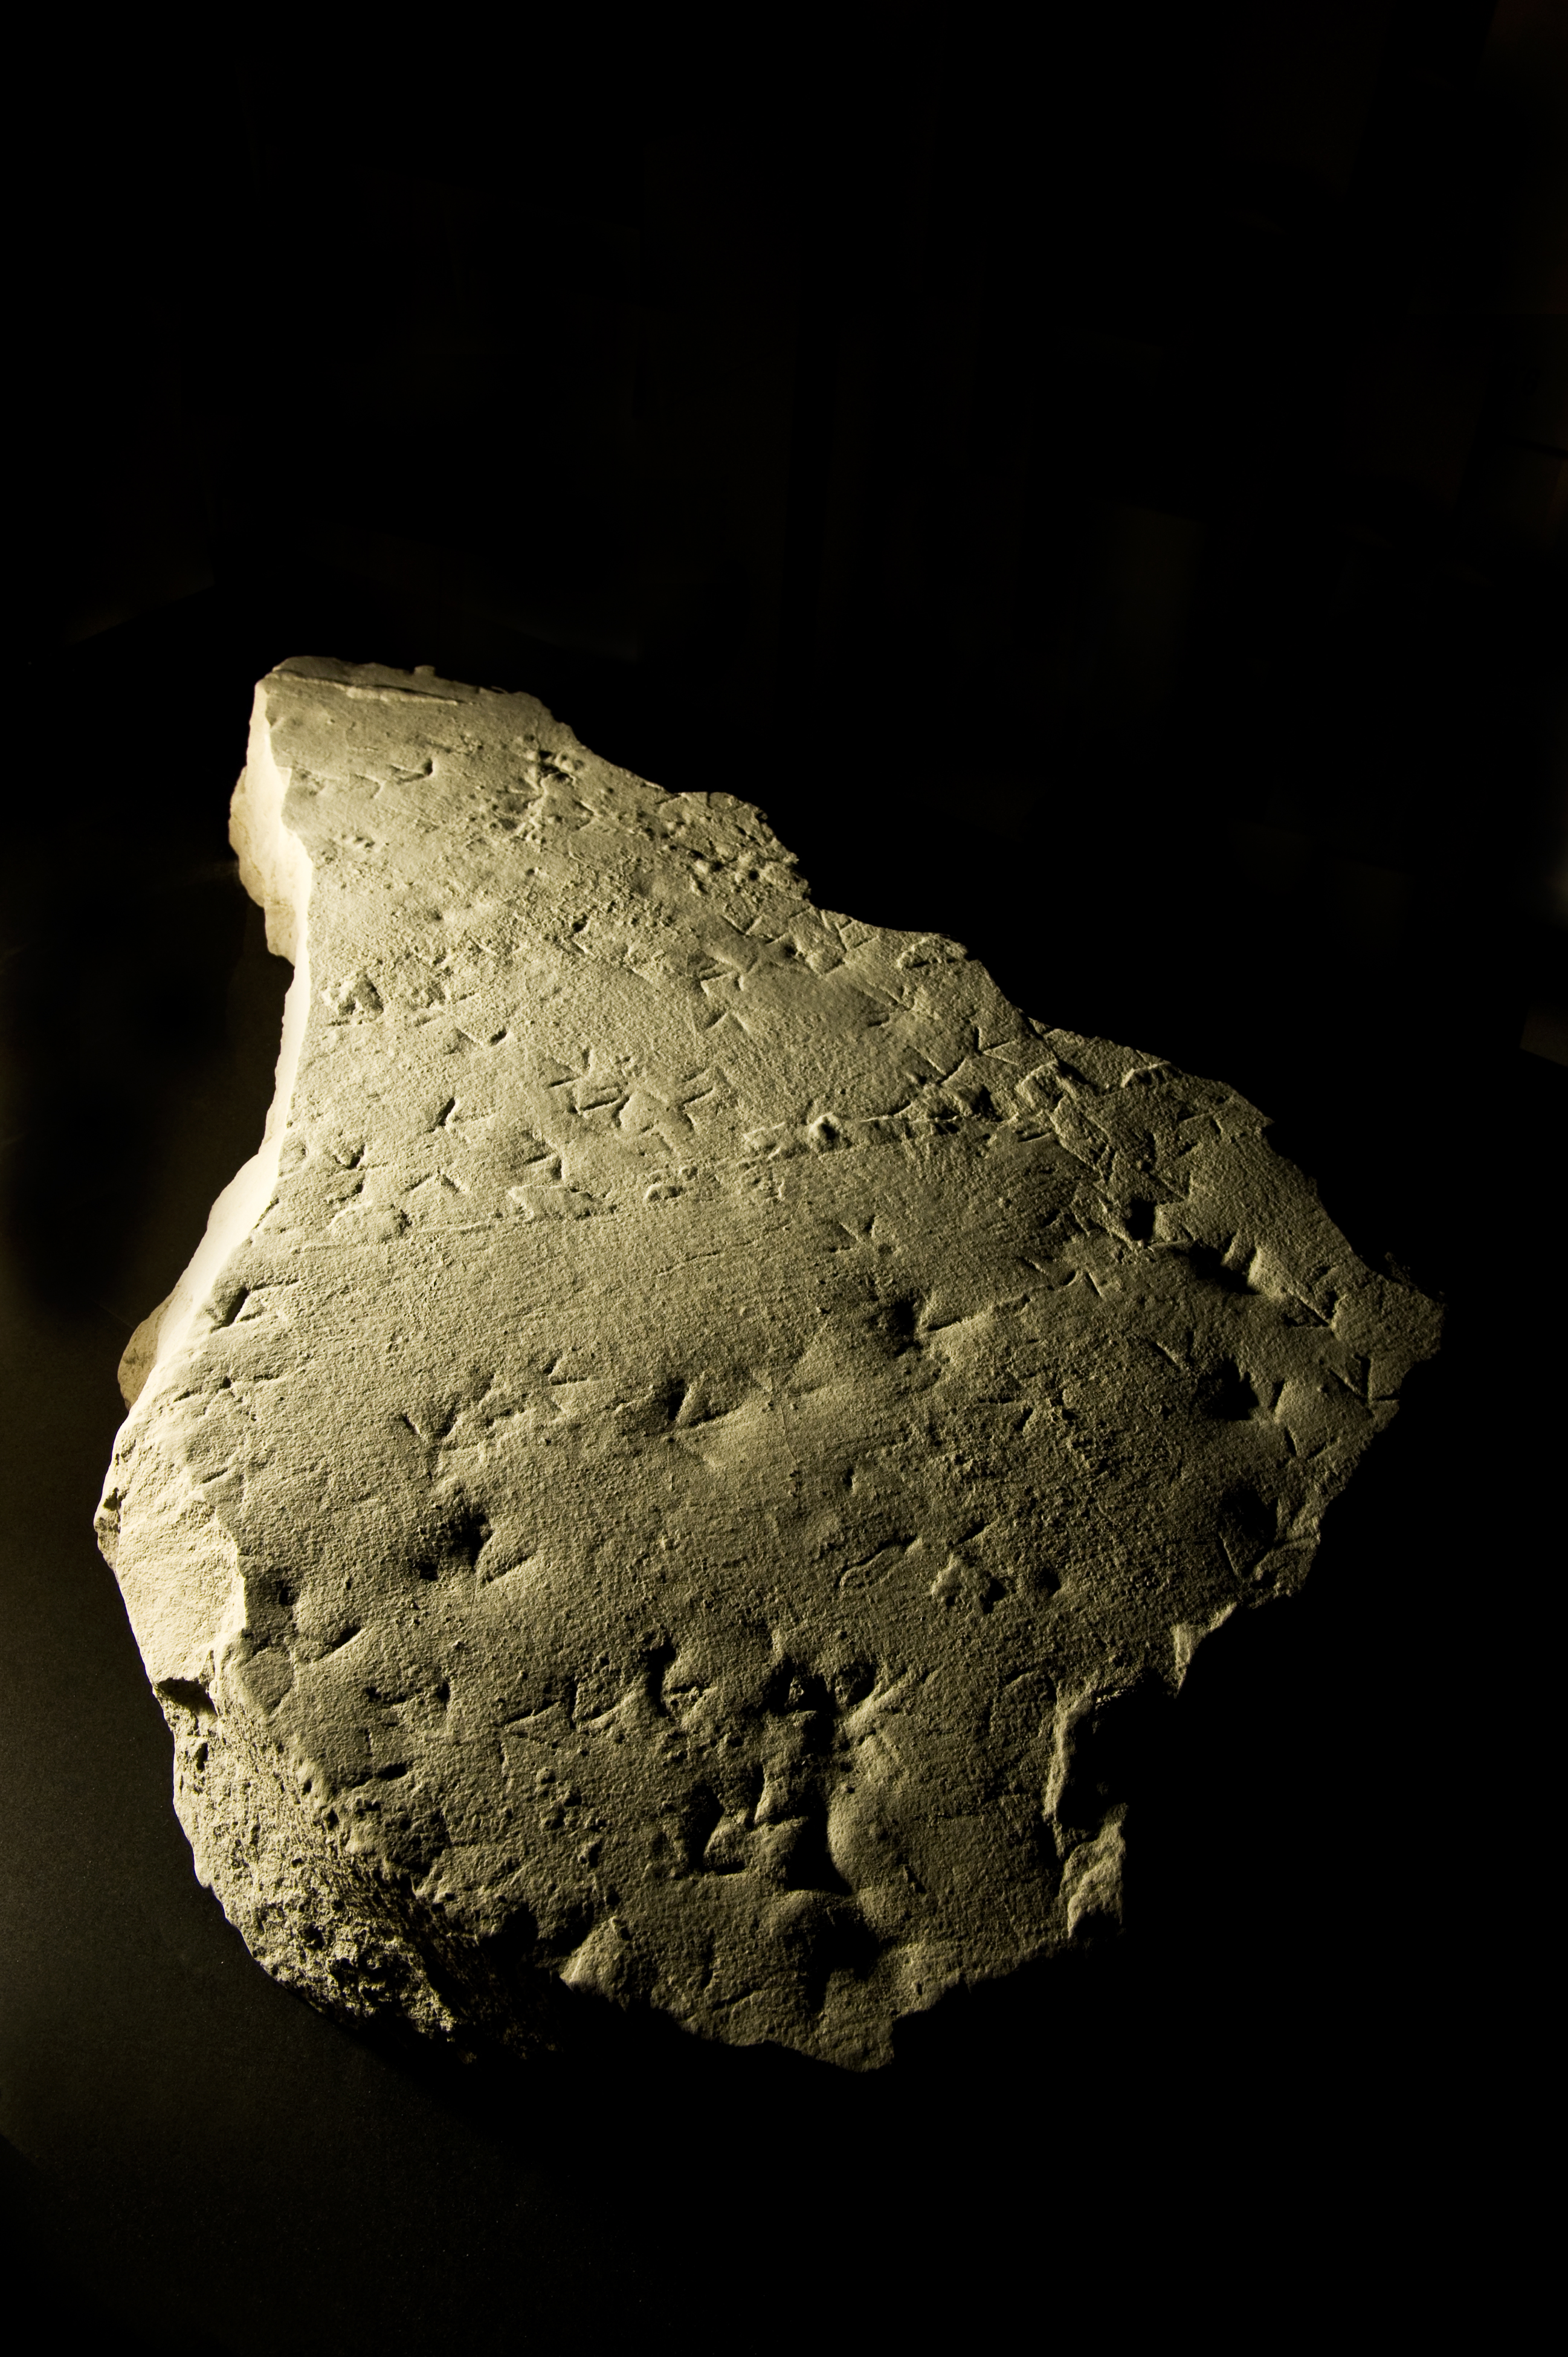 Fossilized sandpiper tracks found in the cave during construction.